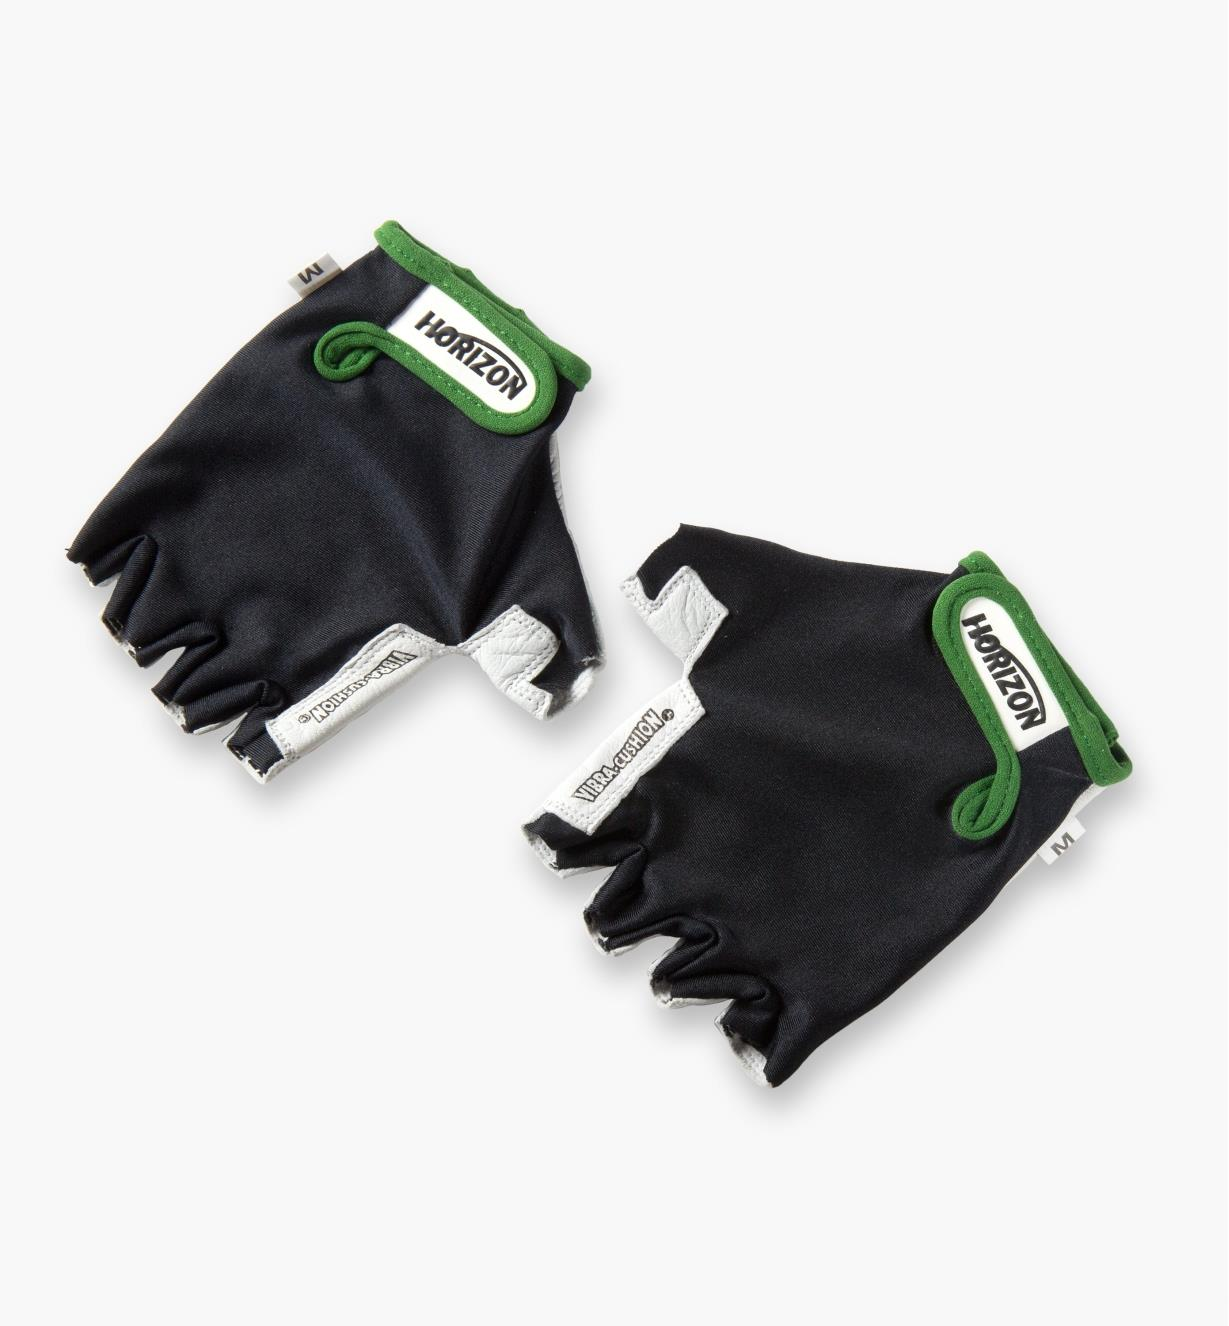 67K8624 - Pr. Anti-Vibration Gloves, Medium